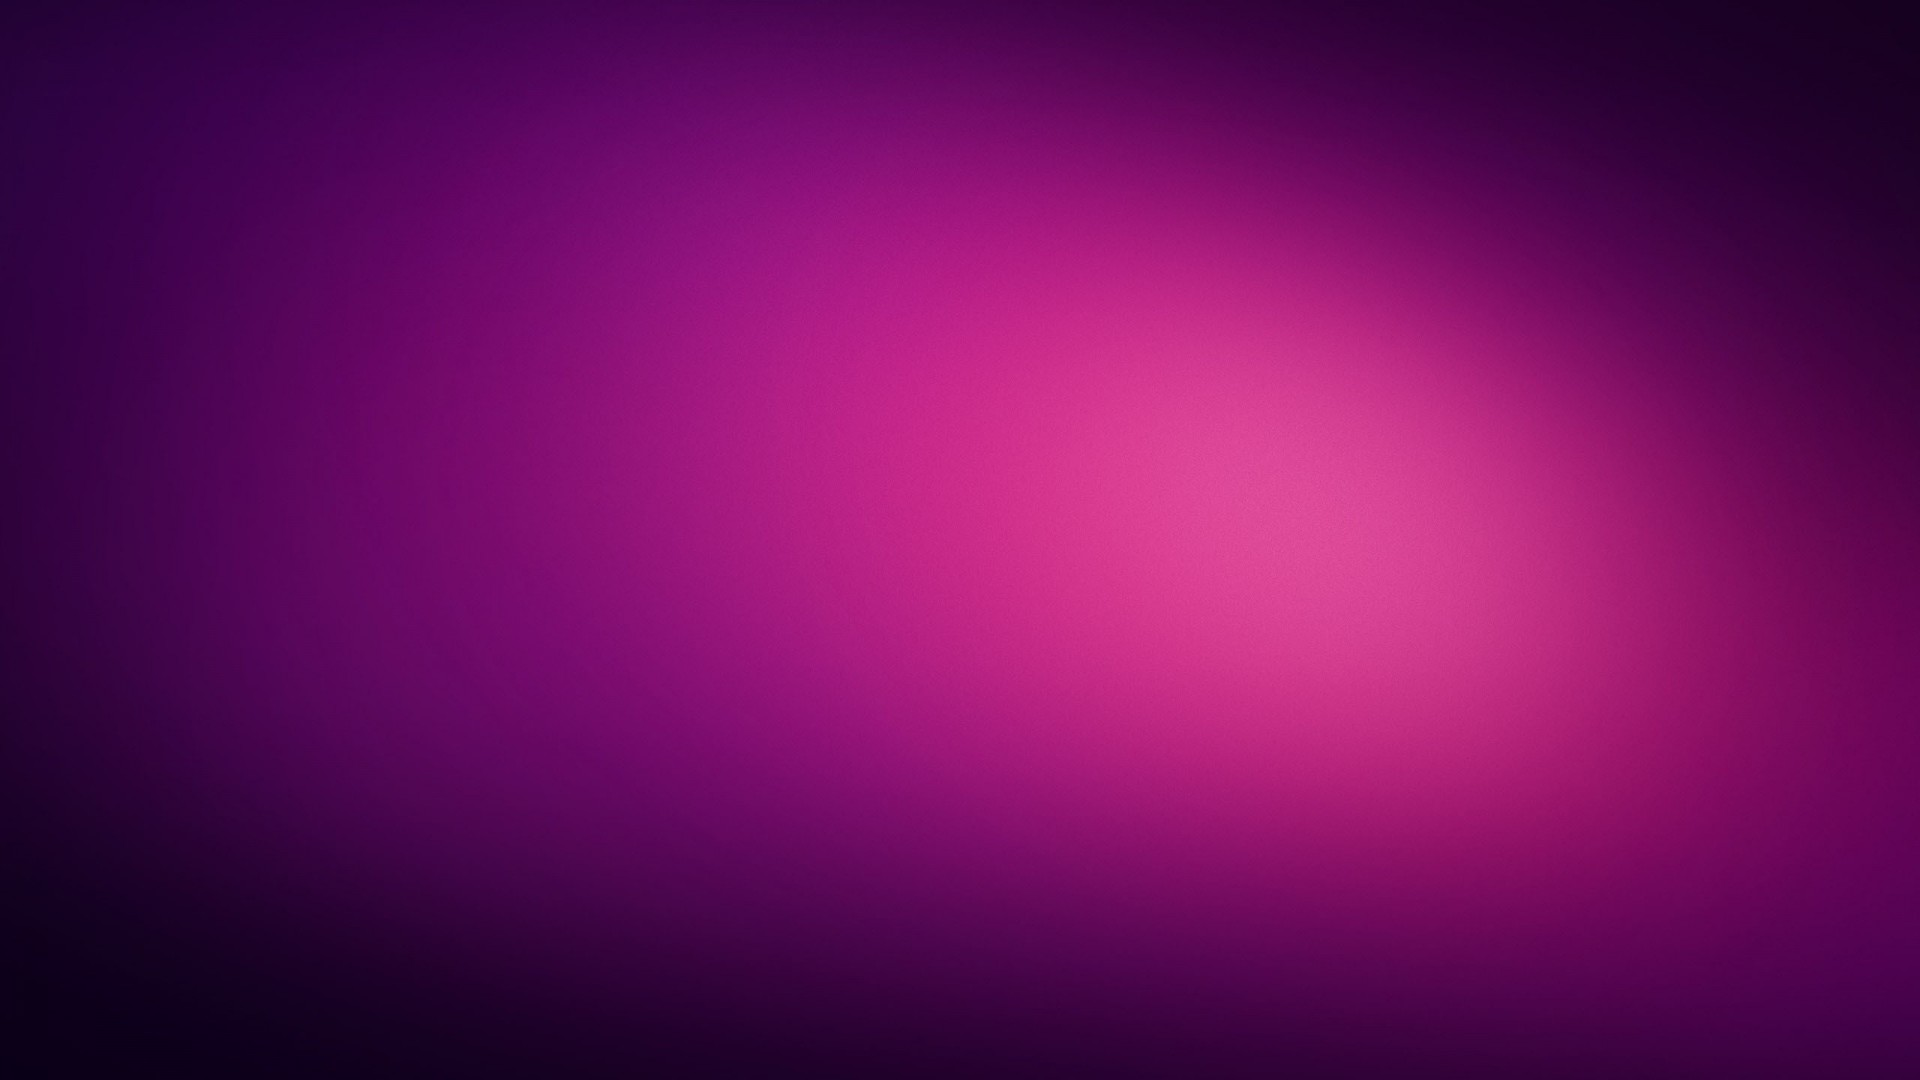 Violet color Background - Wallpaper, High Definition, High Quality, Widescreen